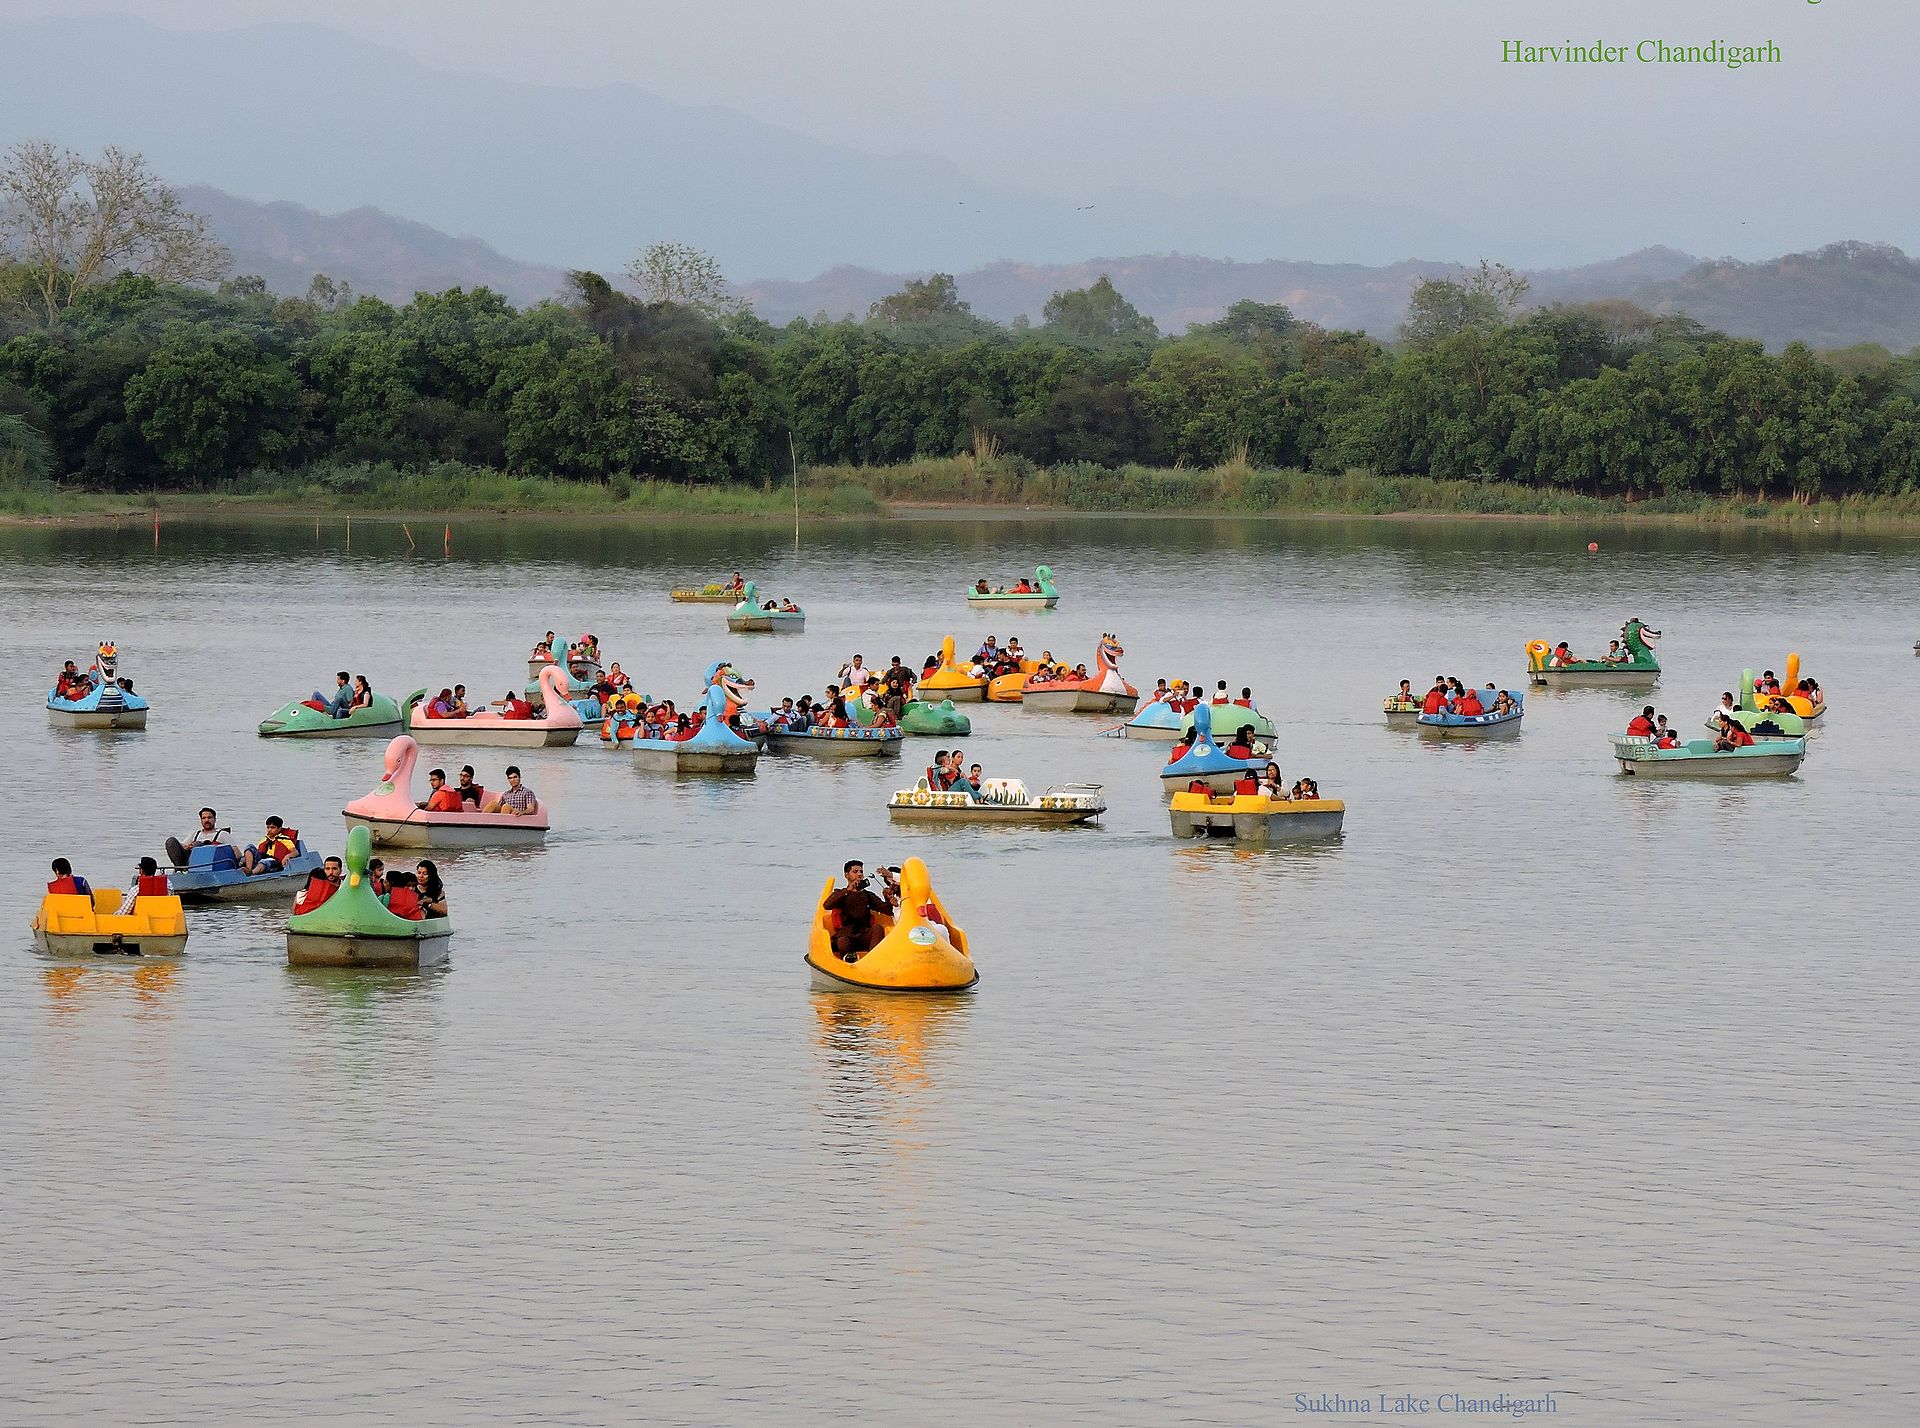 sukhna choe Forests chandigarh has 3245 hectares under forest and most of it is hilly the  forest areas are mostly around sukhna lake, sukhna choe and patiala ki rao.